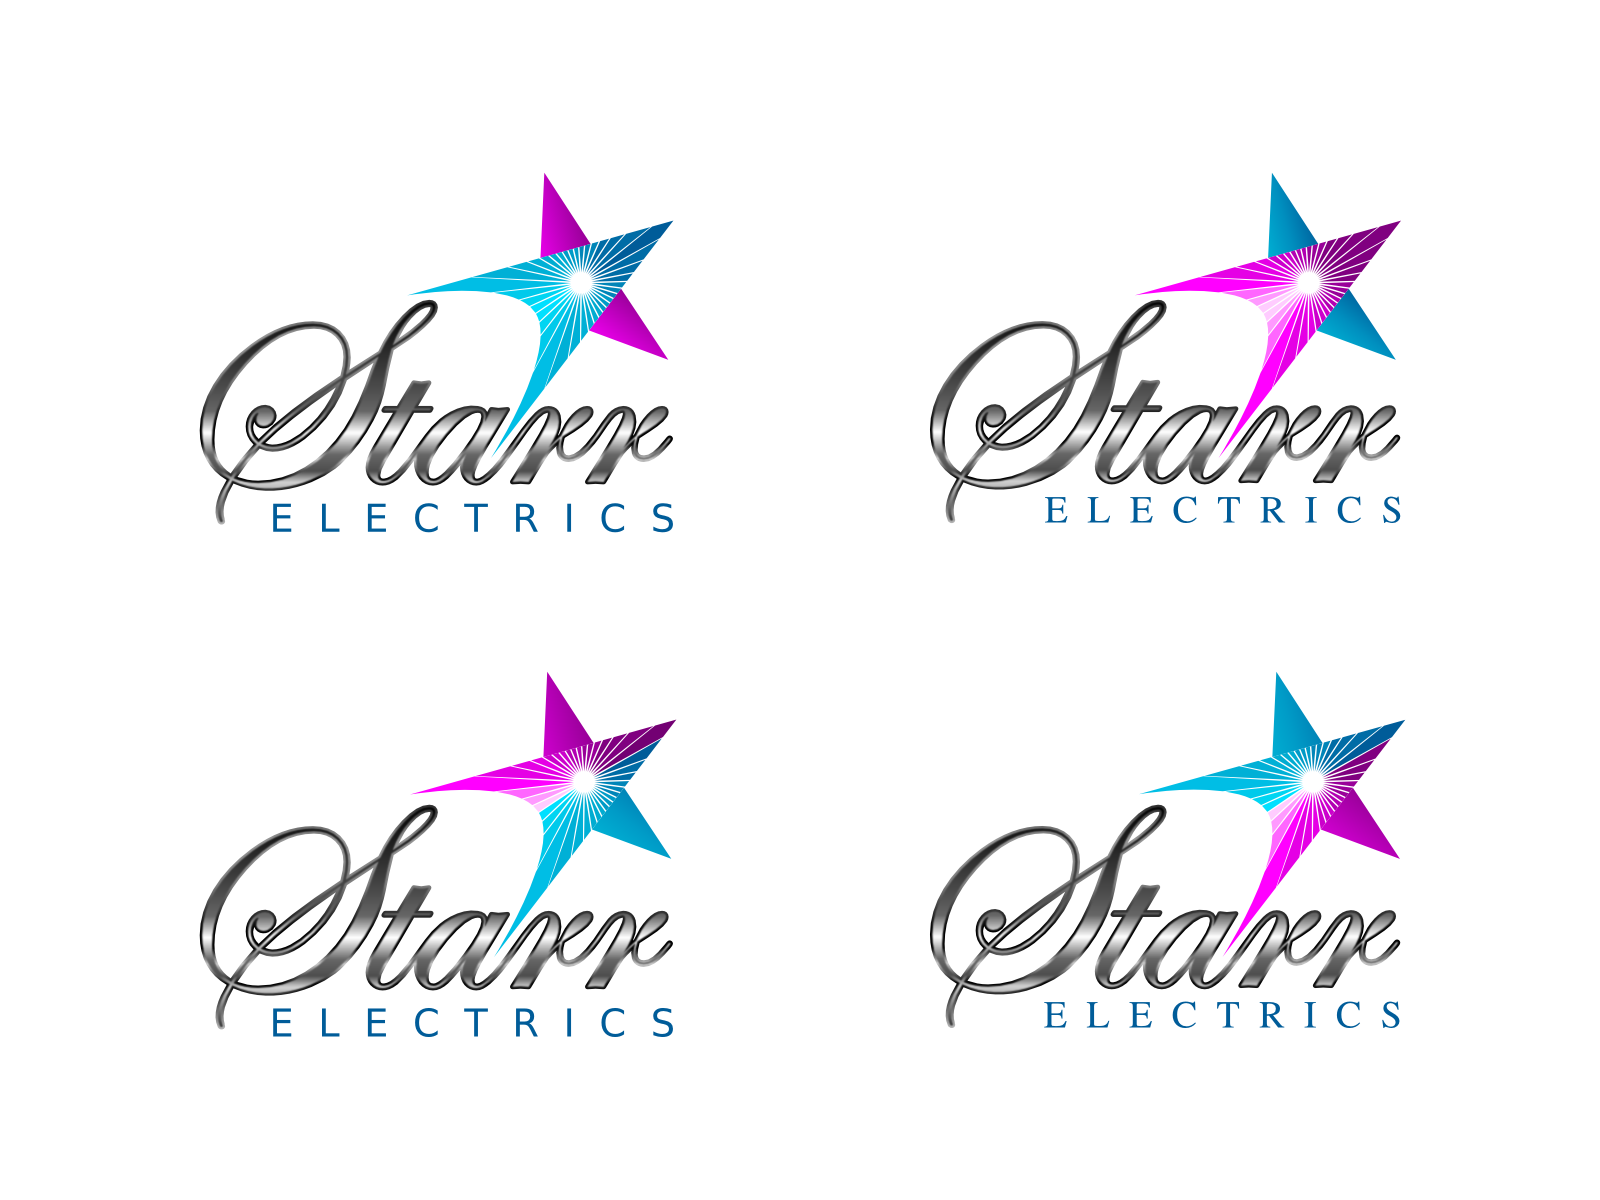 Help Starr Electrics with a new logo